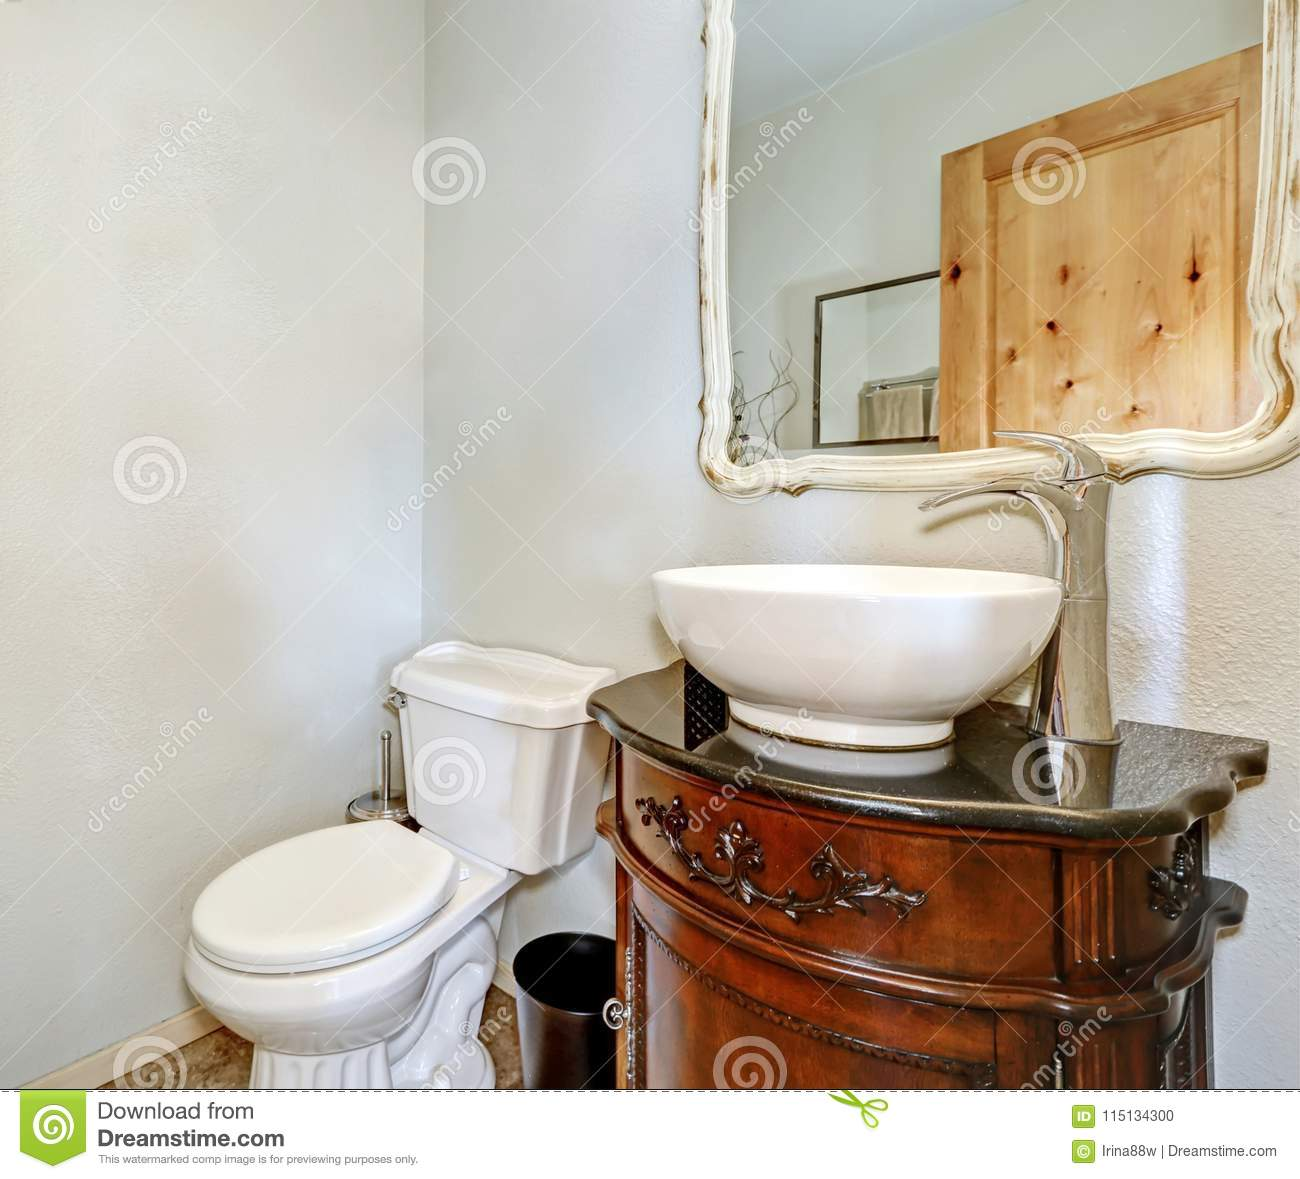 White Half Bath Includes Vintage Vanity Cabinet Stock Photo Image Of Project Real 115134300